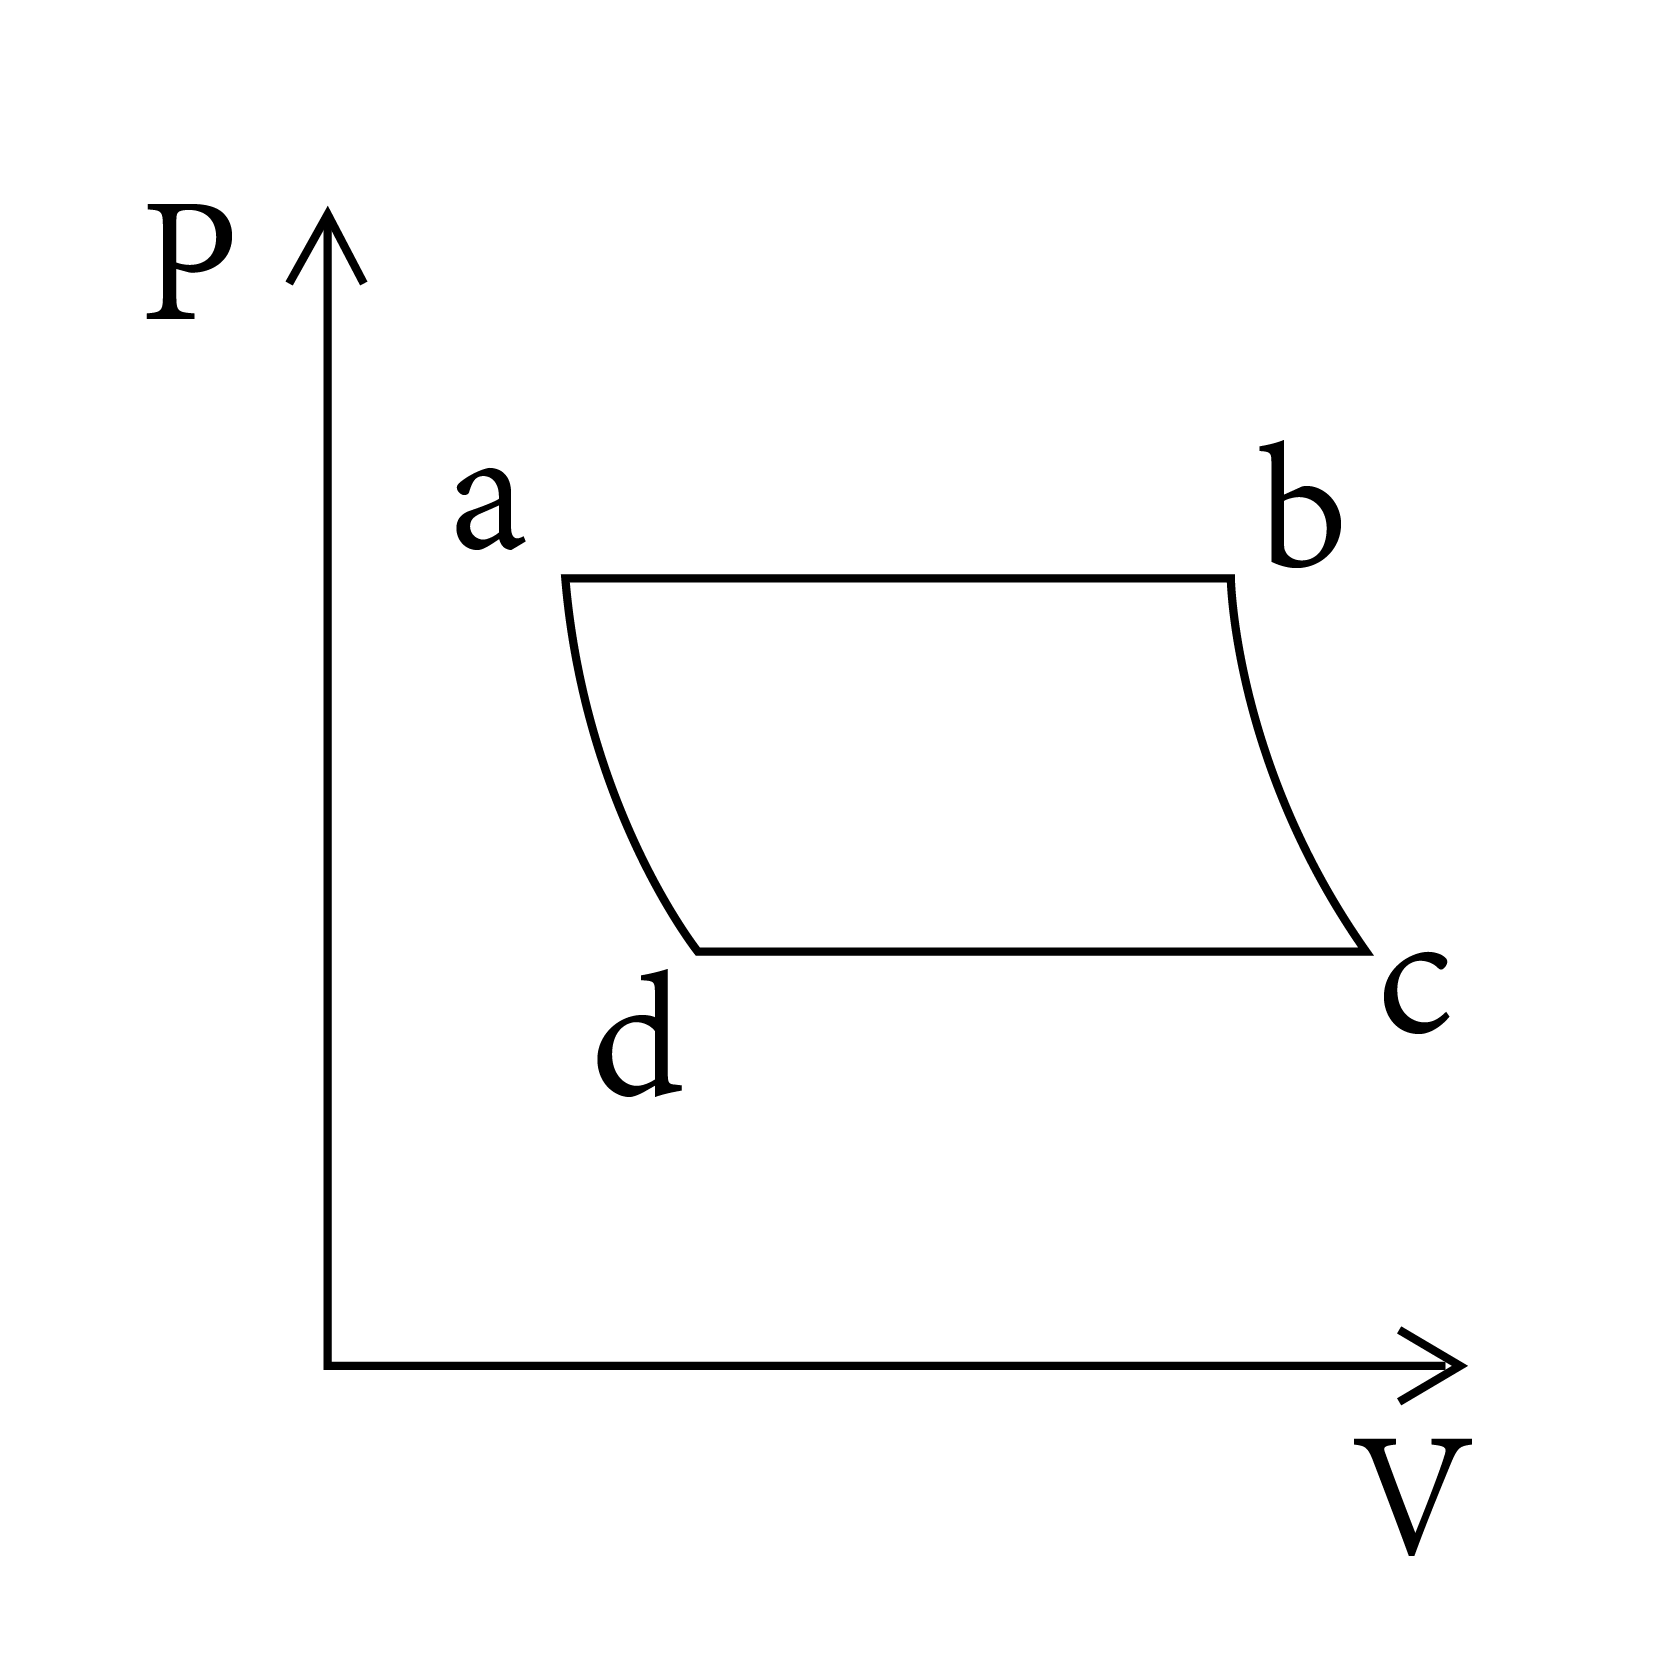 hight resolution of process and are adiabatic the corresponding p v diagram for the process is all figure are schematic and not drawn to scale